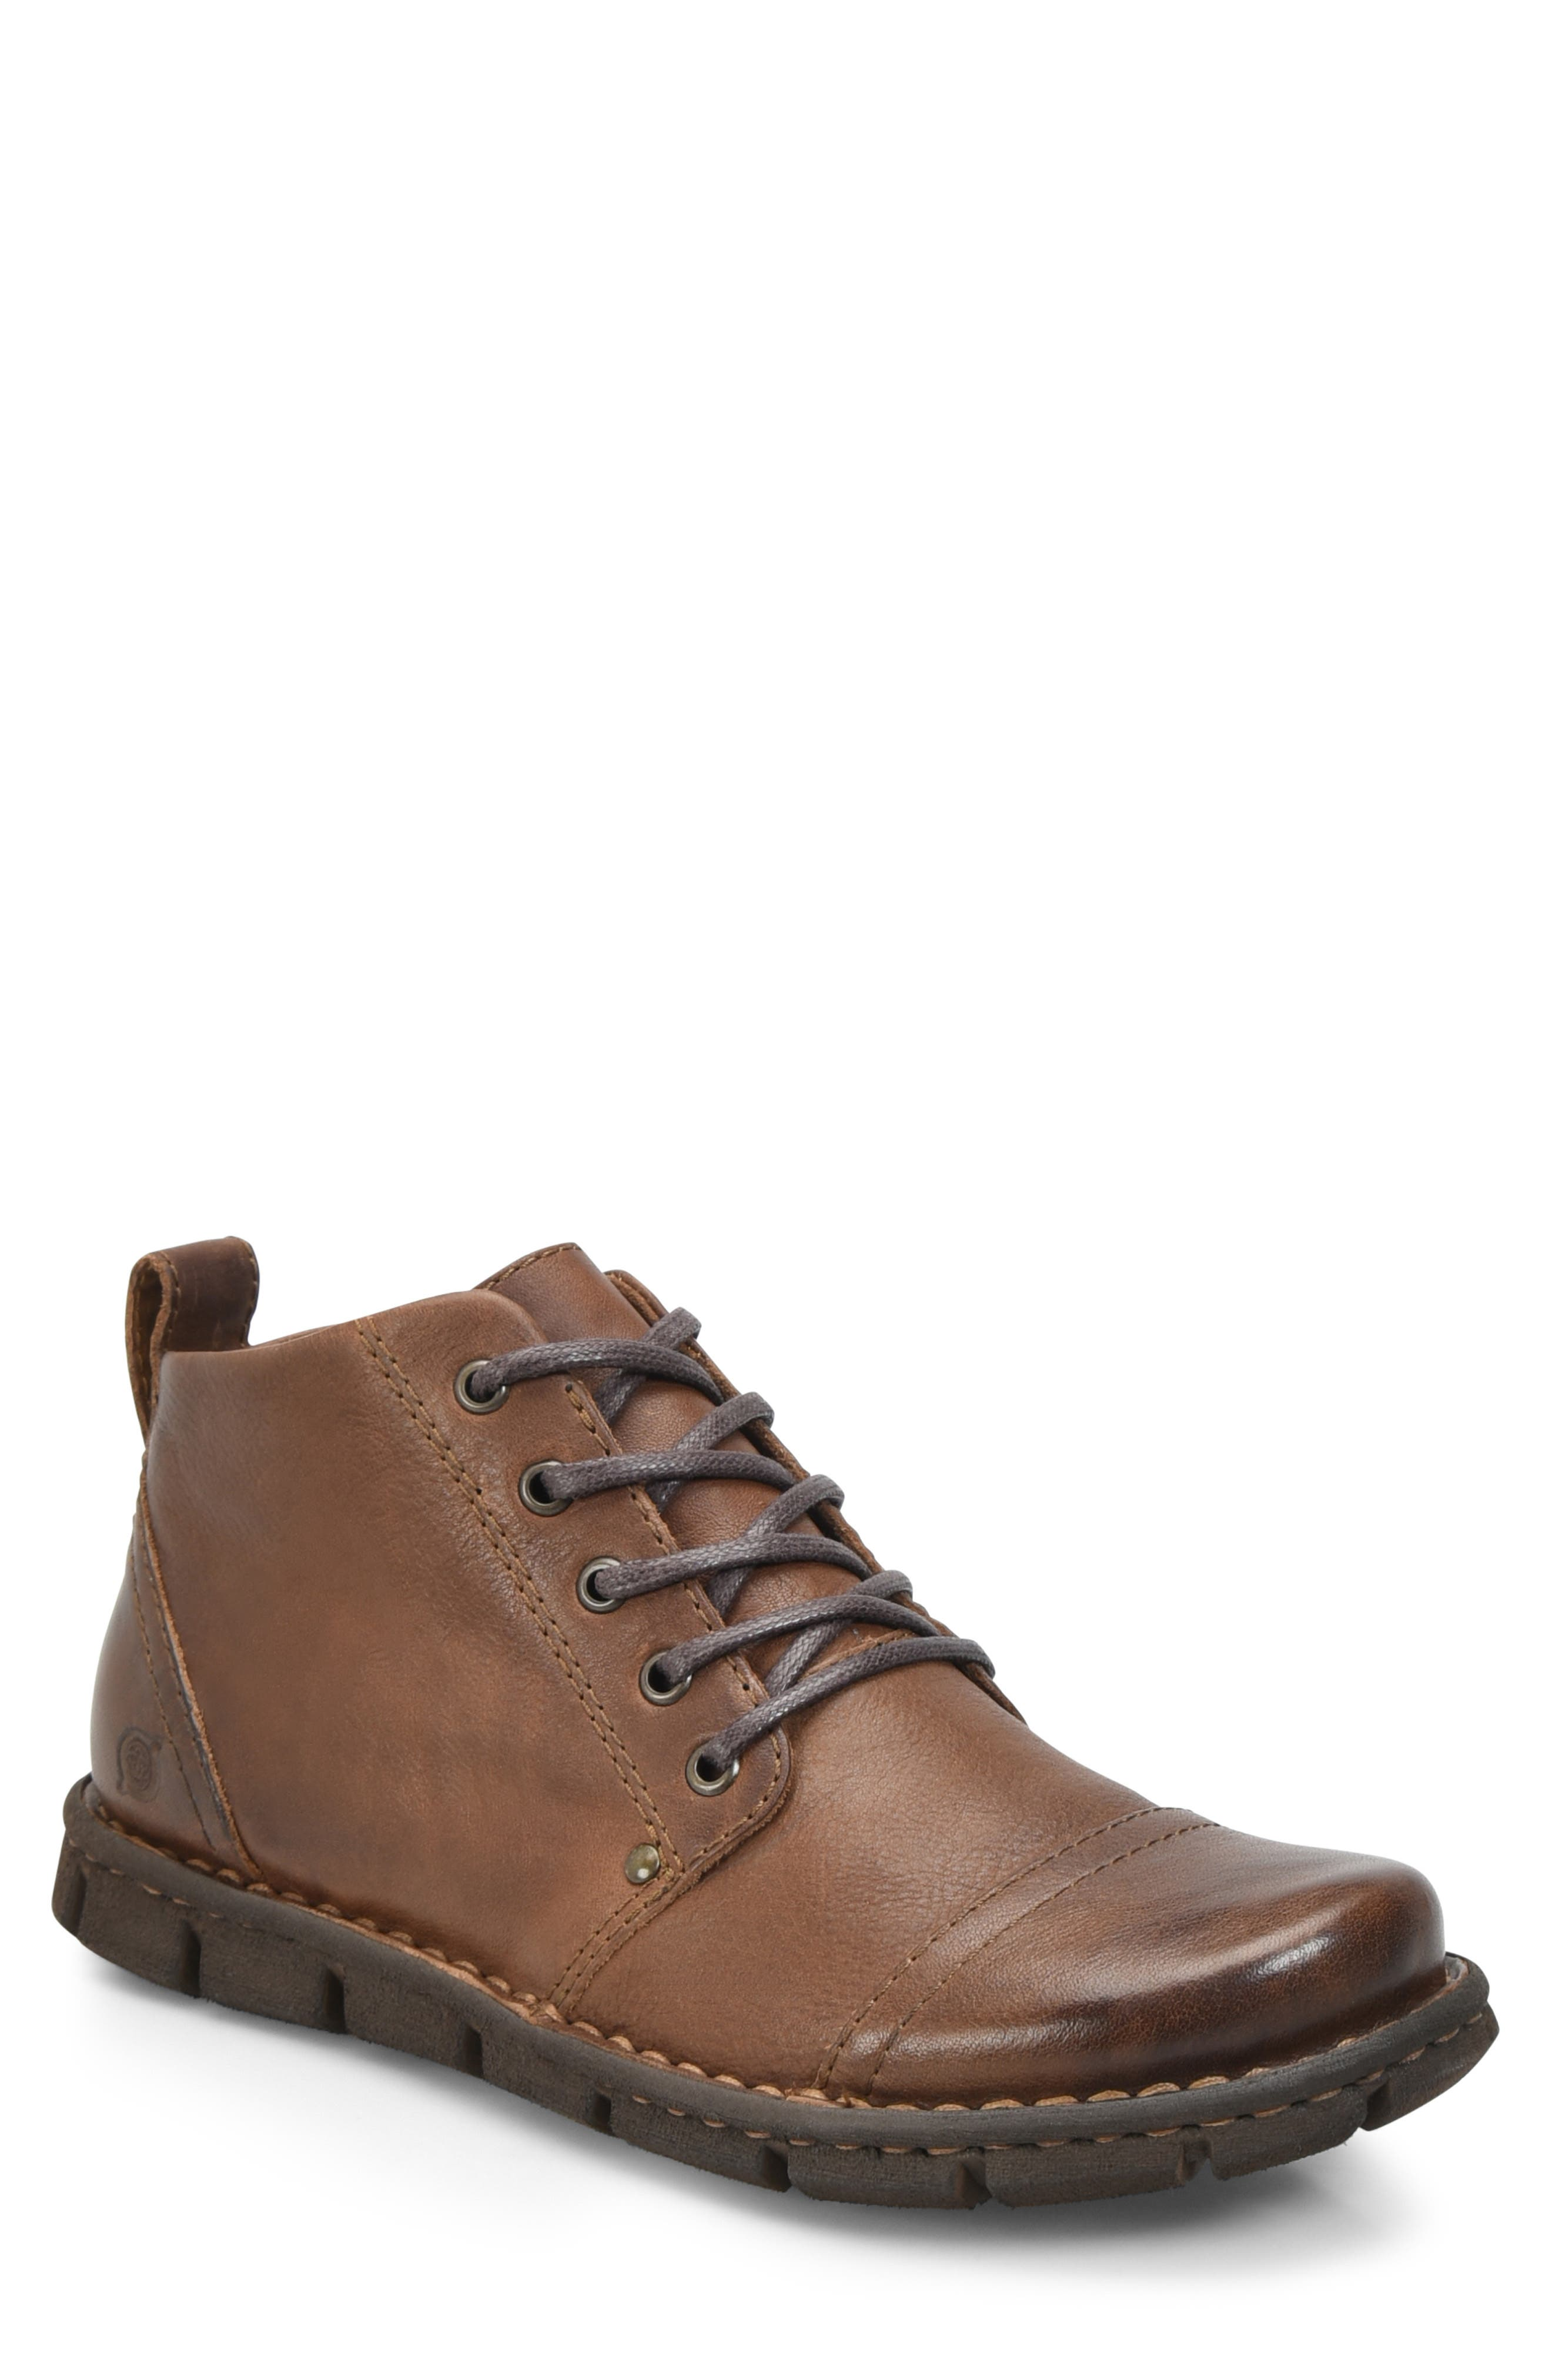 Boulder Cap Toe Boot,                         Main,                         color, BROWN LEATHER